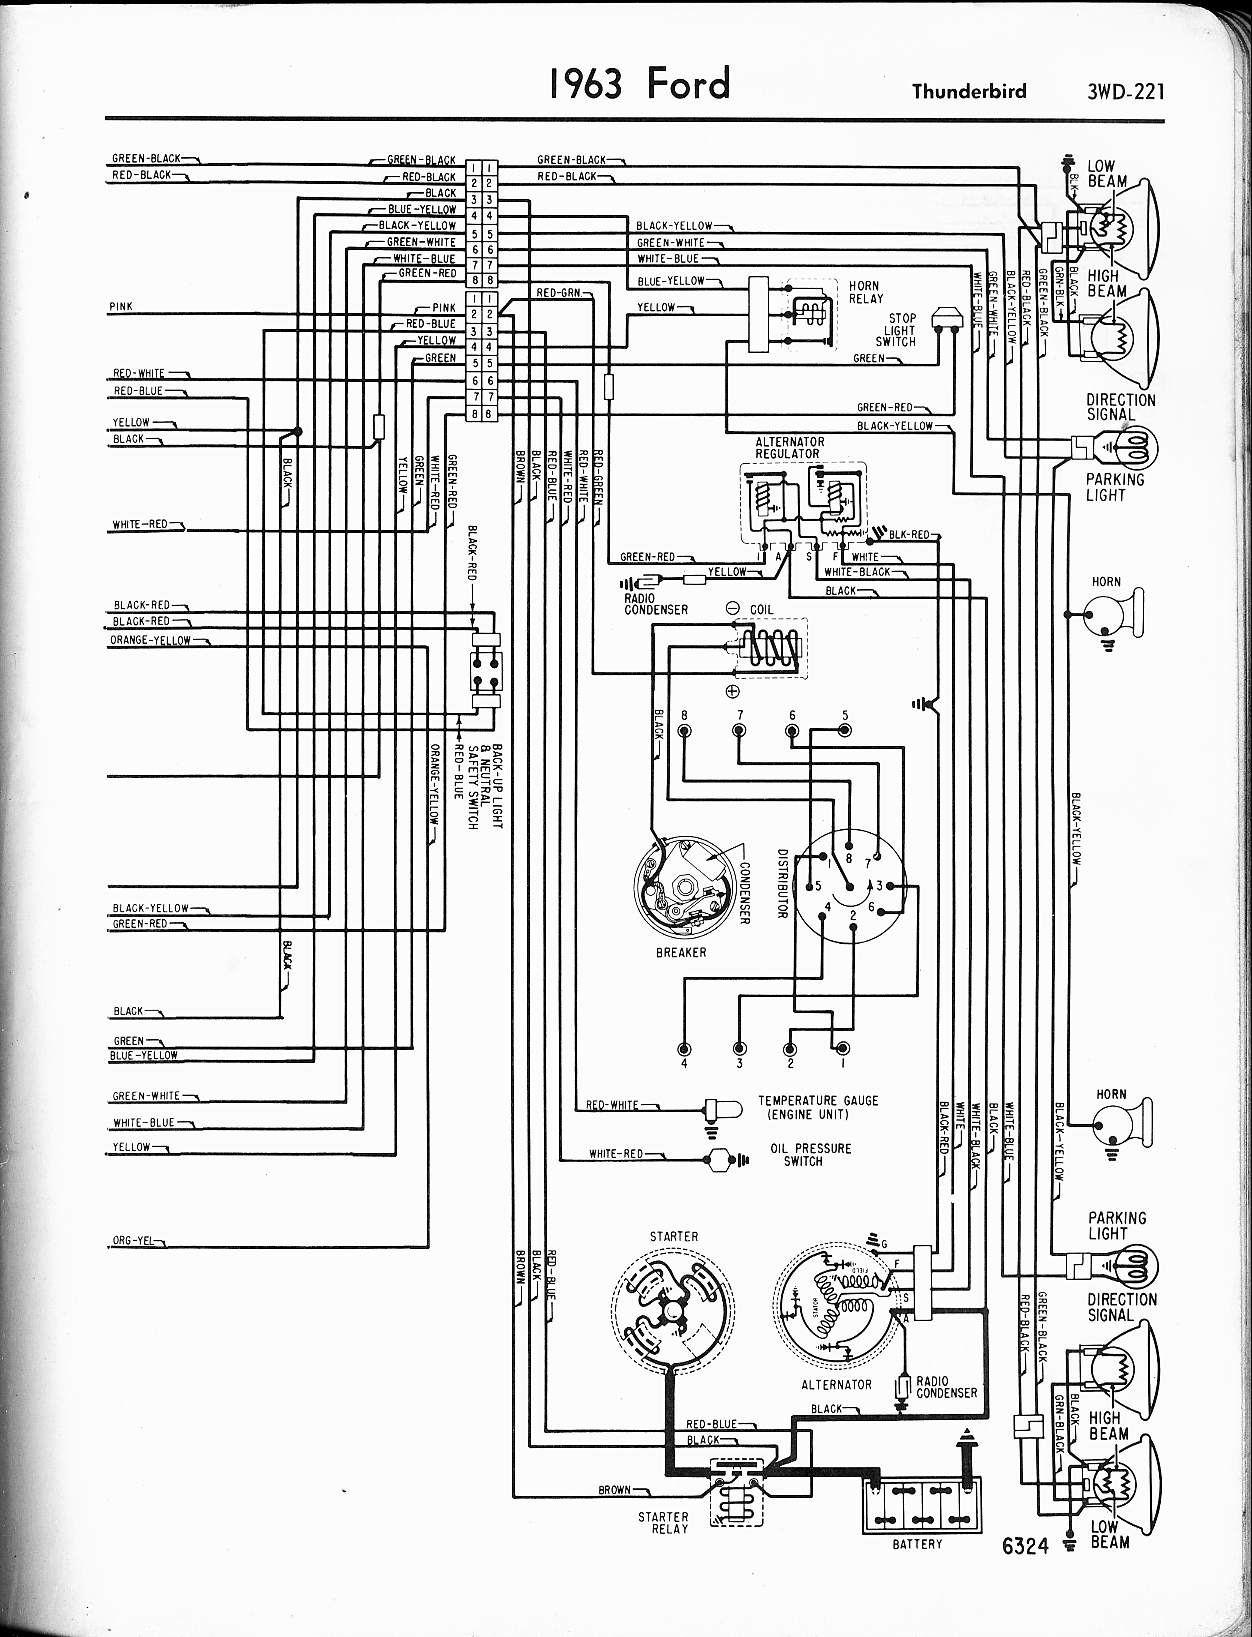 66 Ford Ranchero Wiring Diagram Schematics Diagram 1967 Ranchero Wiring  Schematics 1964 Ford Ranchero Wiring Diagram